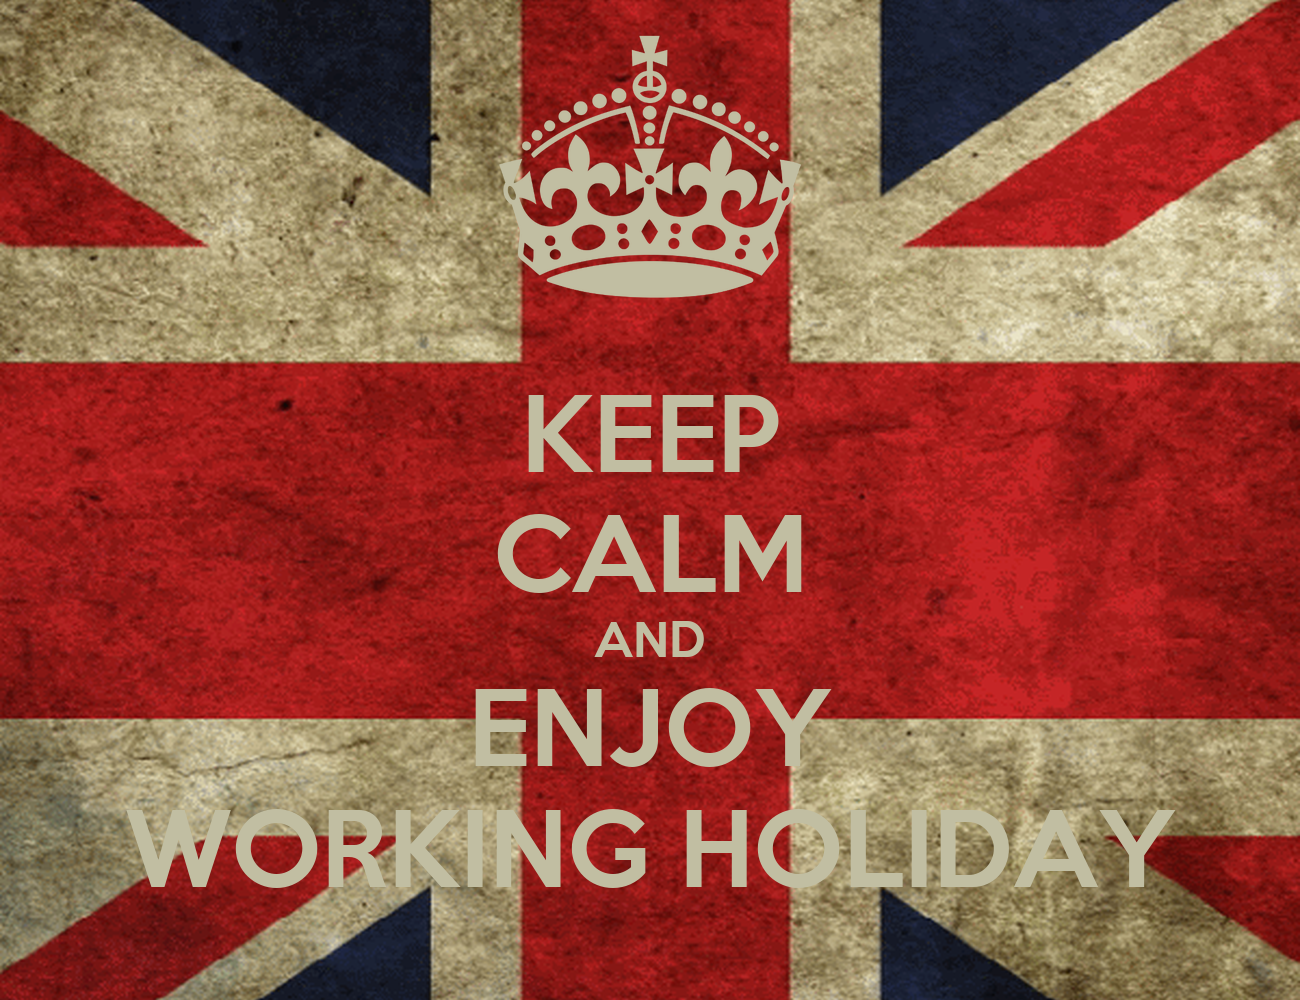 keep-calm-and-enjoy-working-holiday.png (1300×1000)